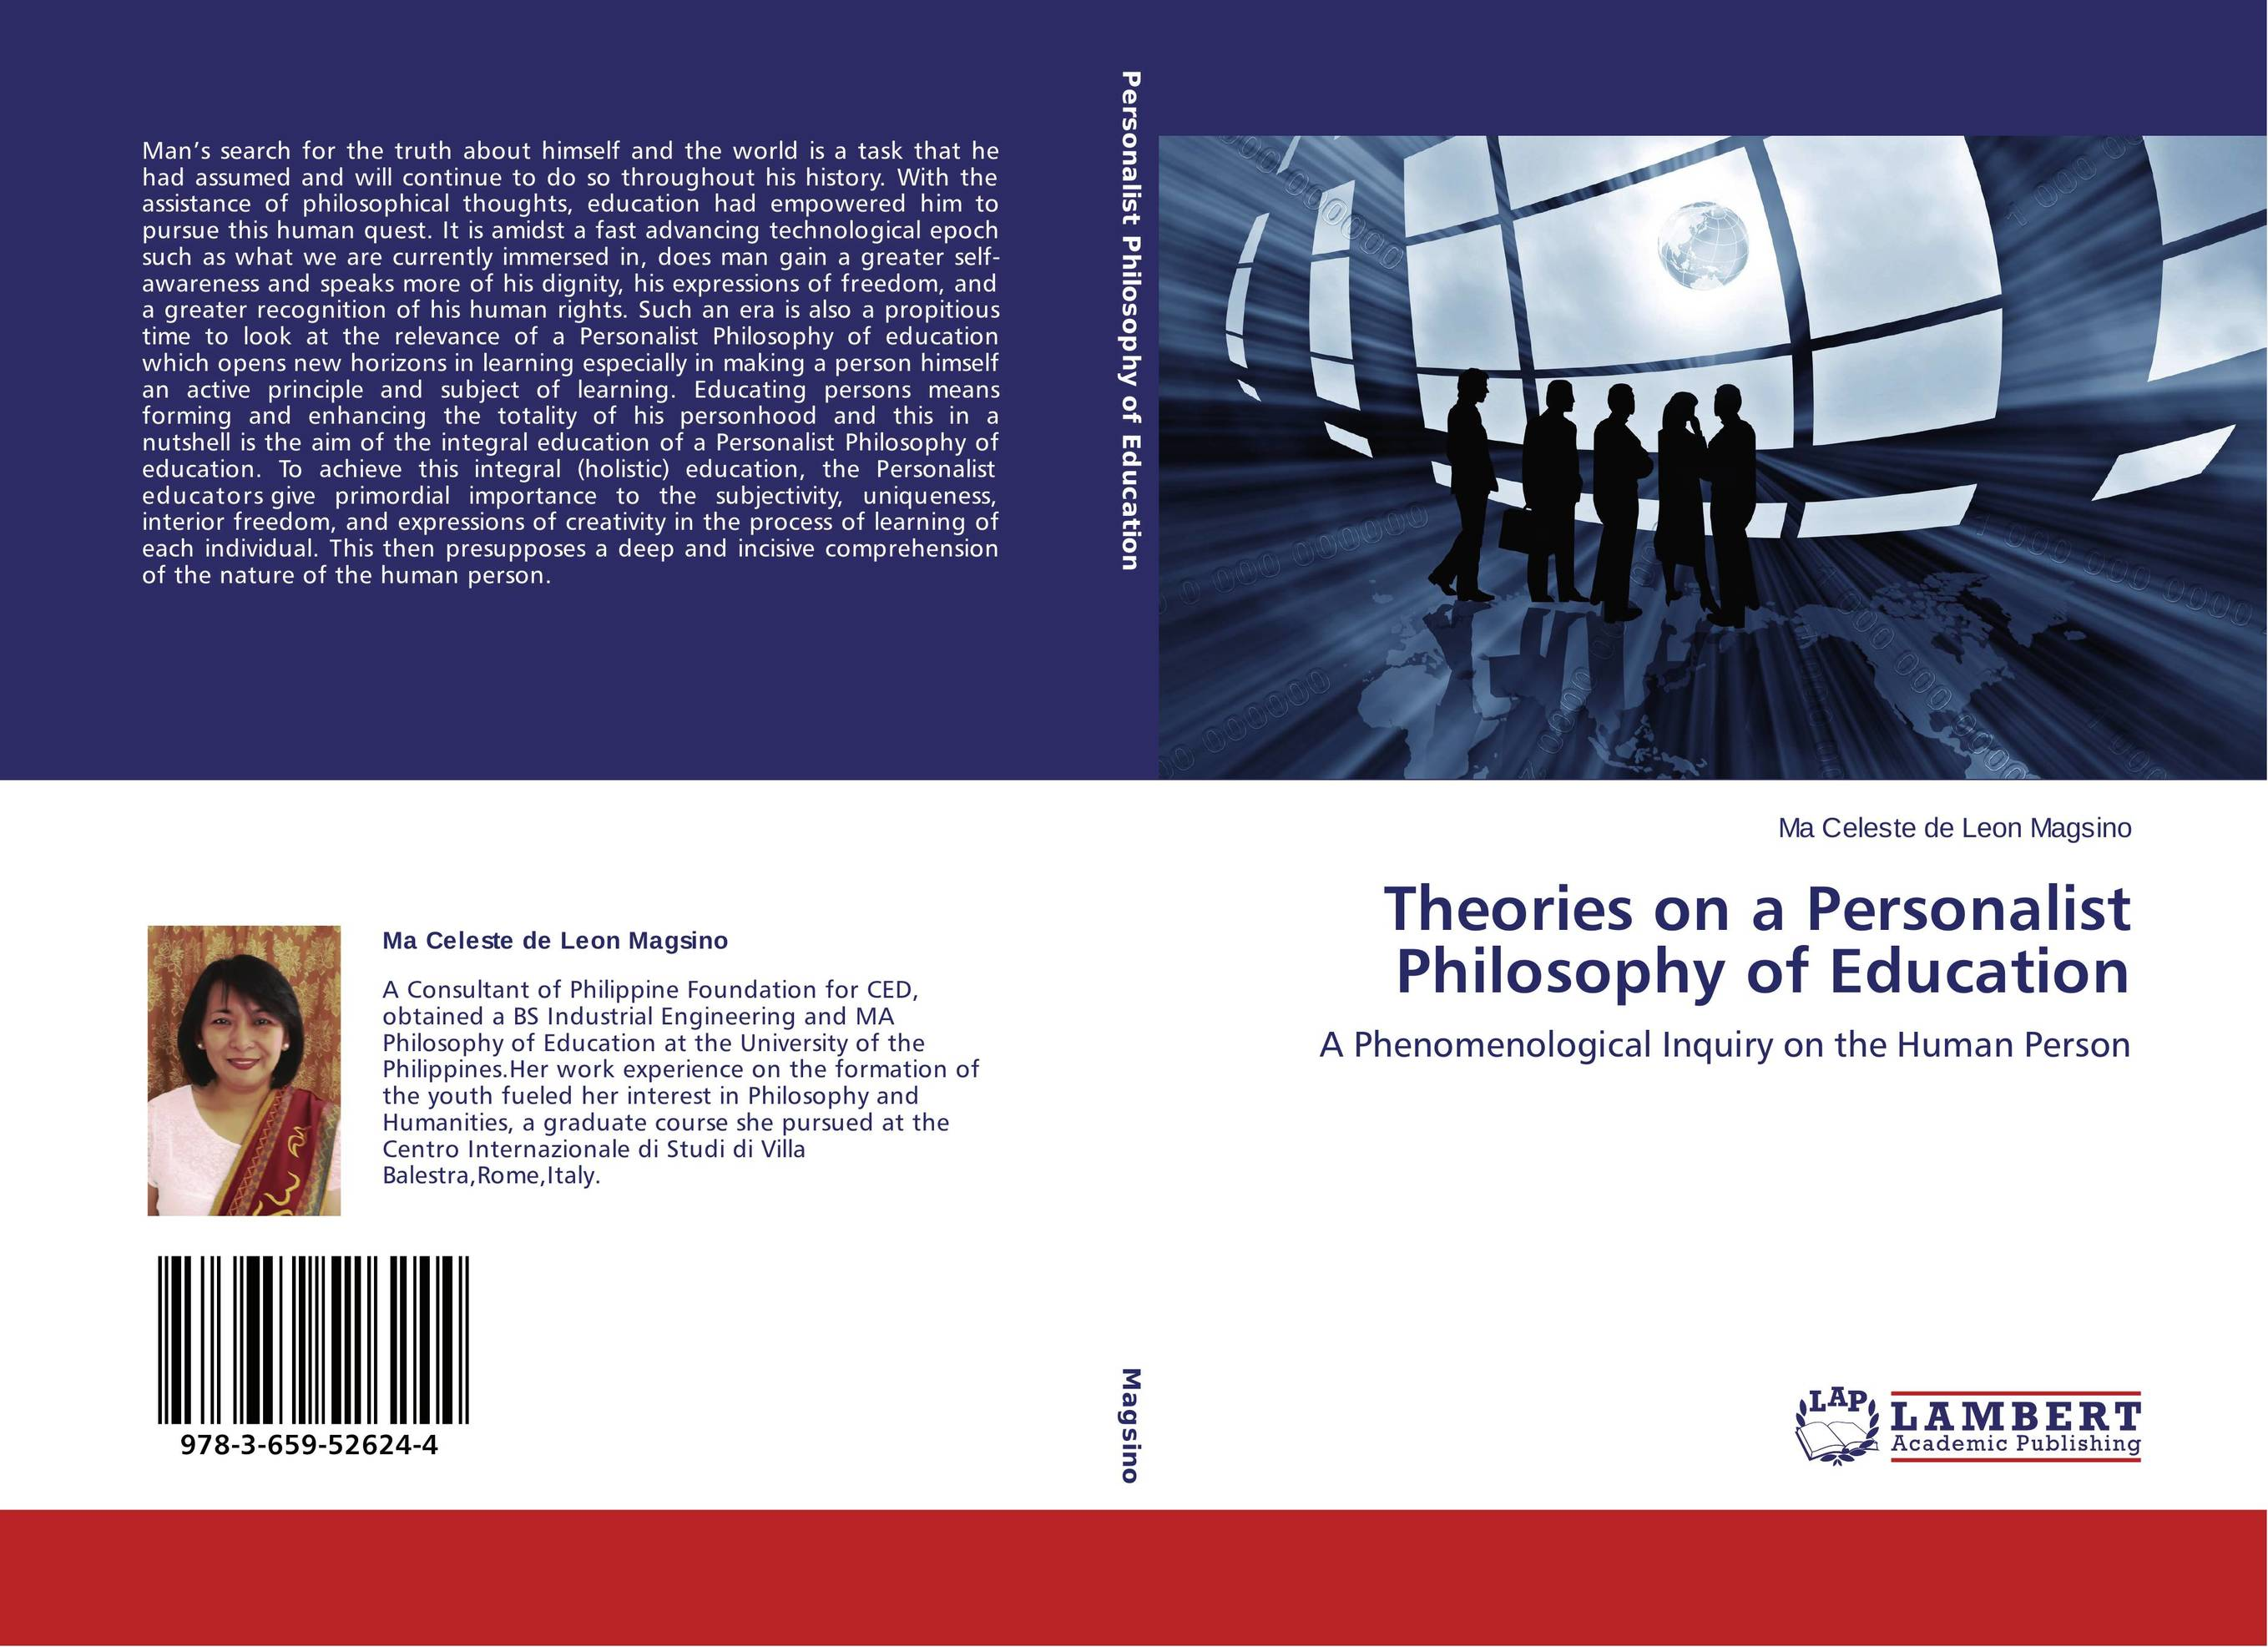 philosophy of the human person The philosophy of the human person download the philosophy of the human person or read online books in pdf, epub, tuebl, and mobi format click download or read online button to get the philosophy of the human person book now.